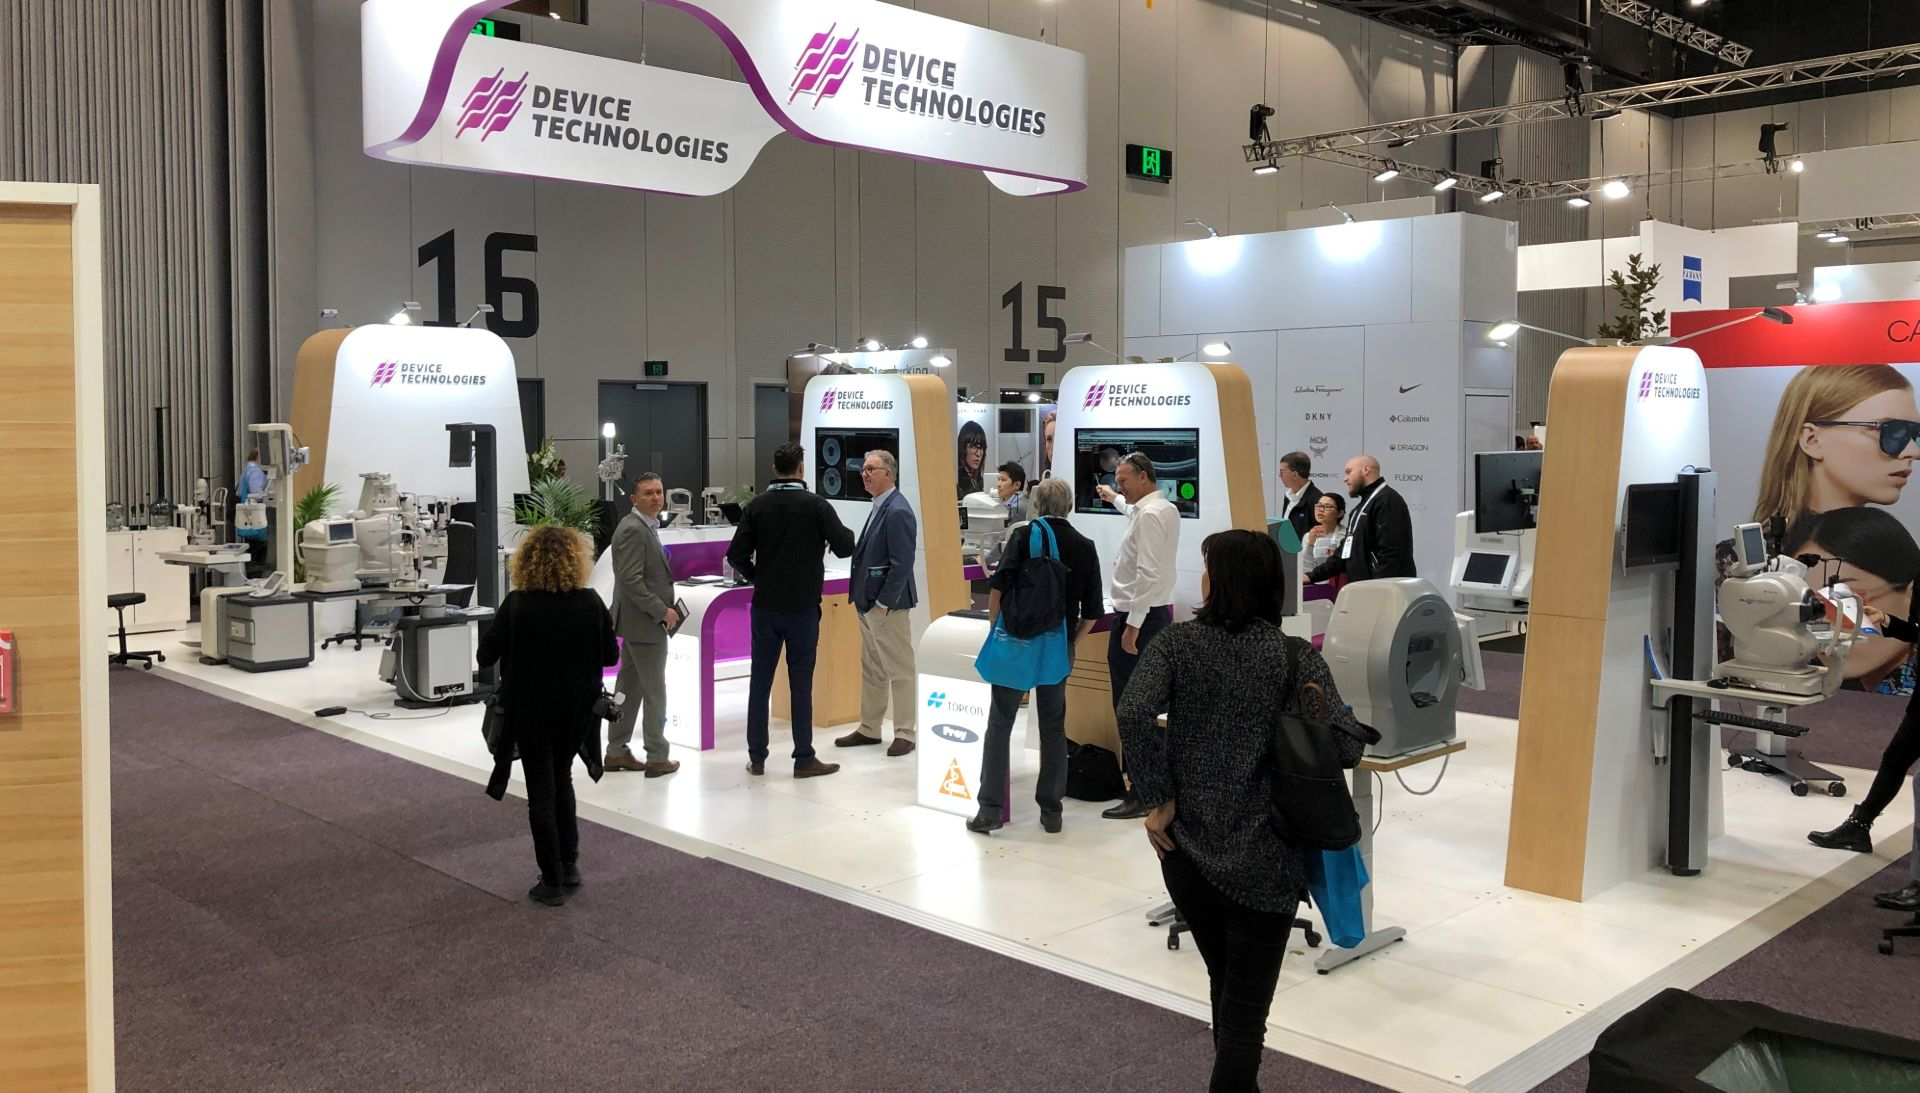 Device Technologies Trade Show